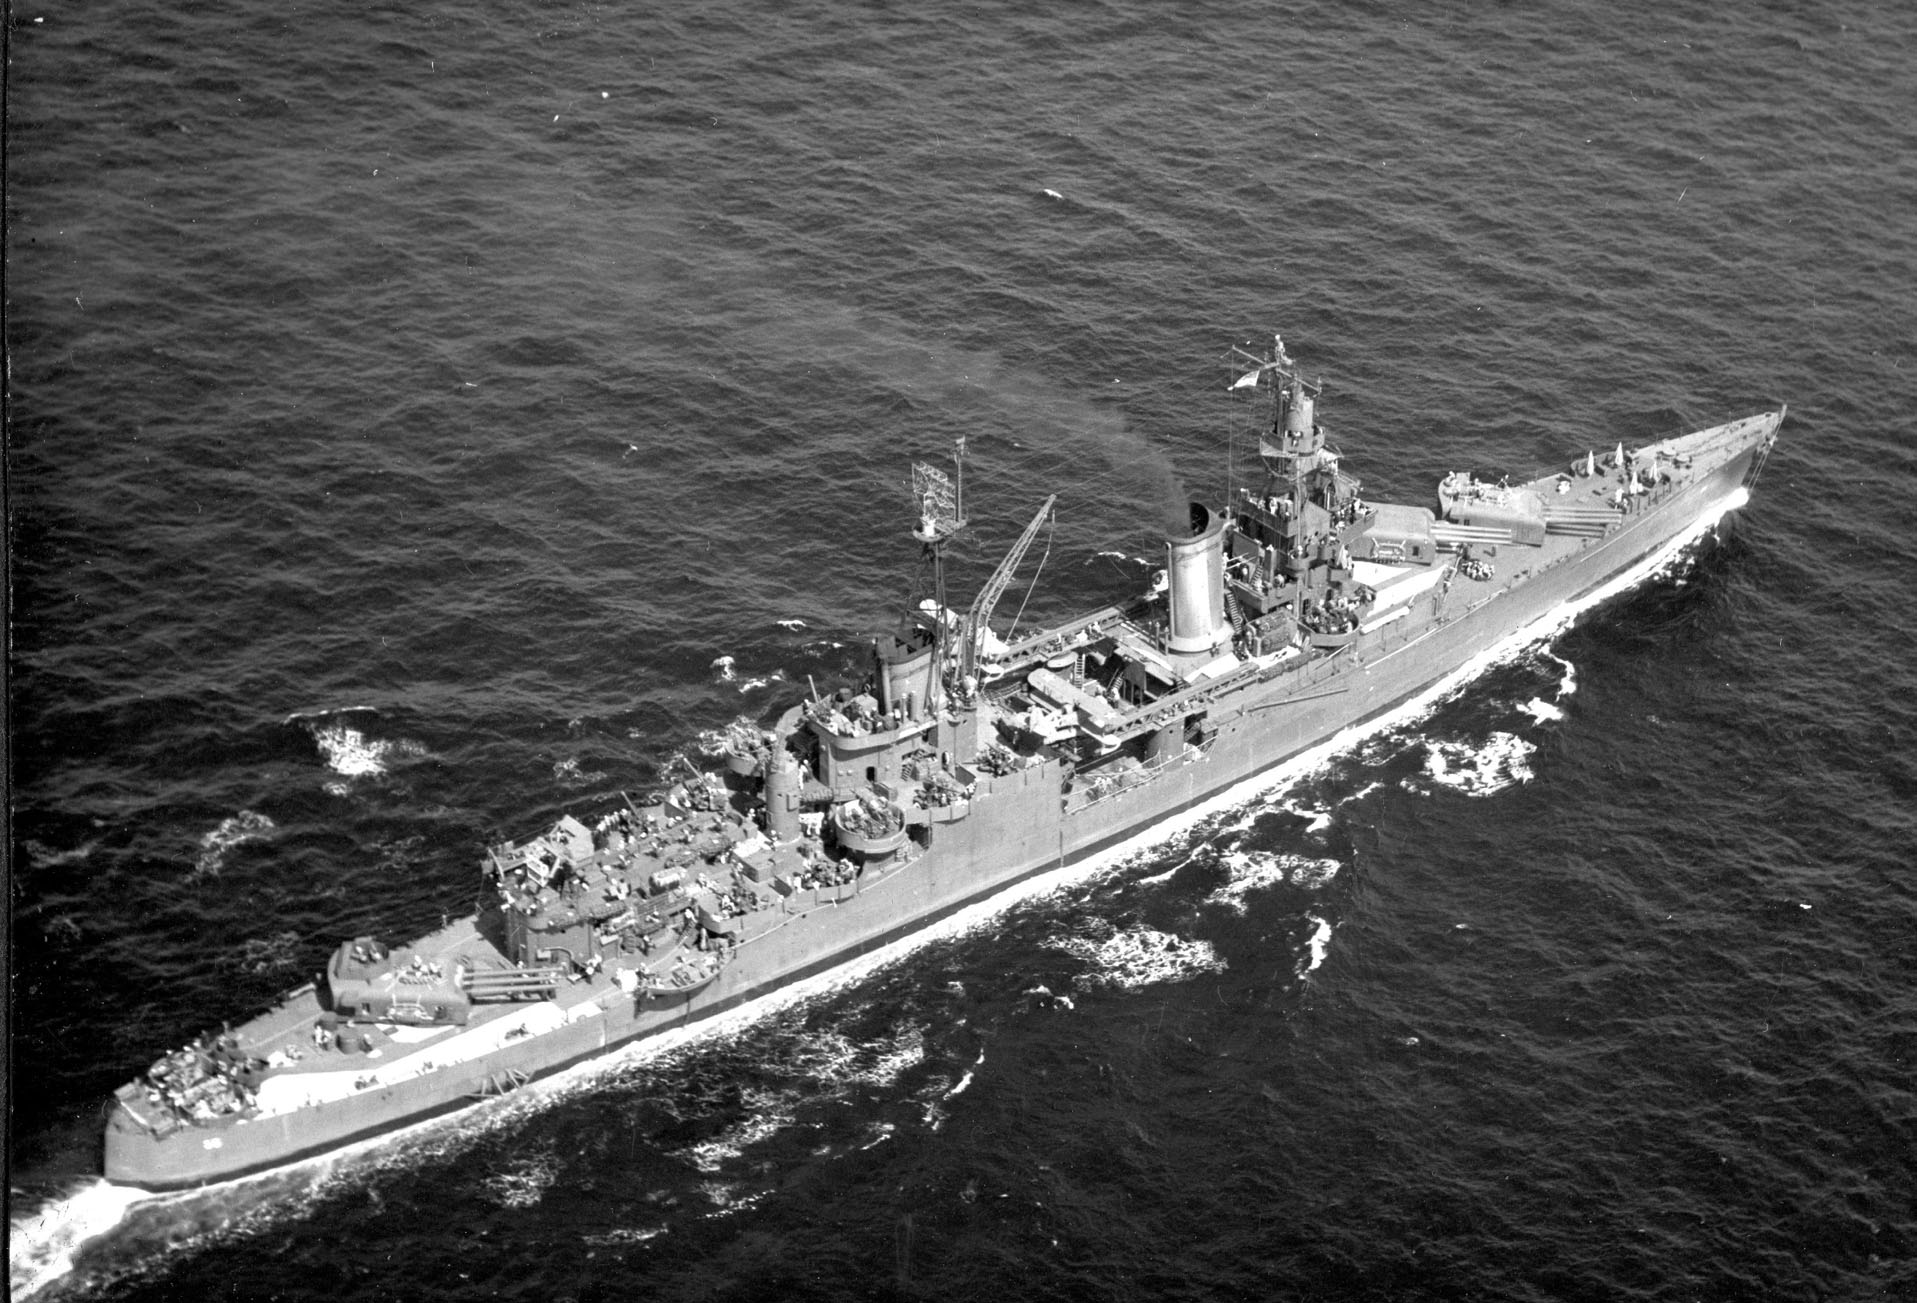 After 72 Years, Wreckage of U.S. Navy's Biggest Tragedy is Found